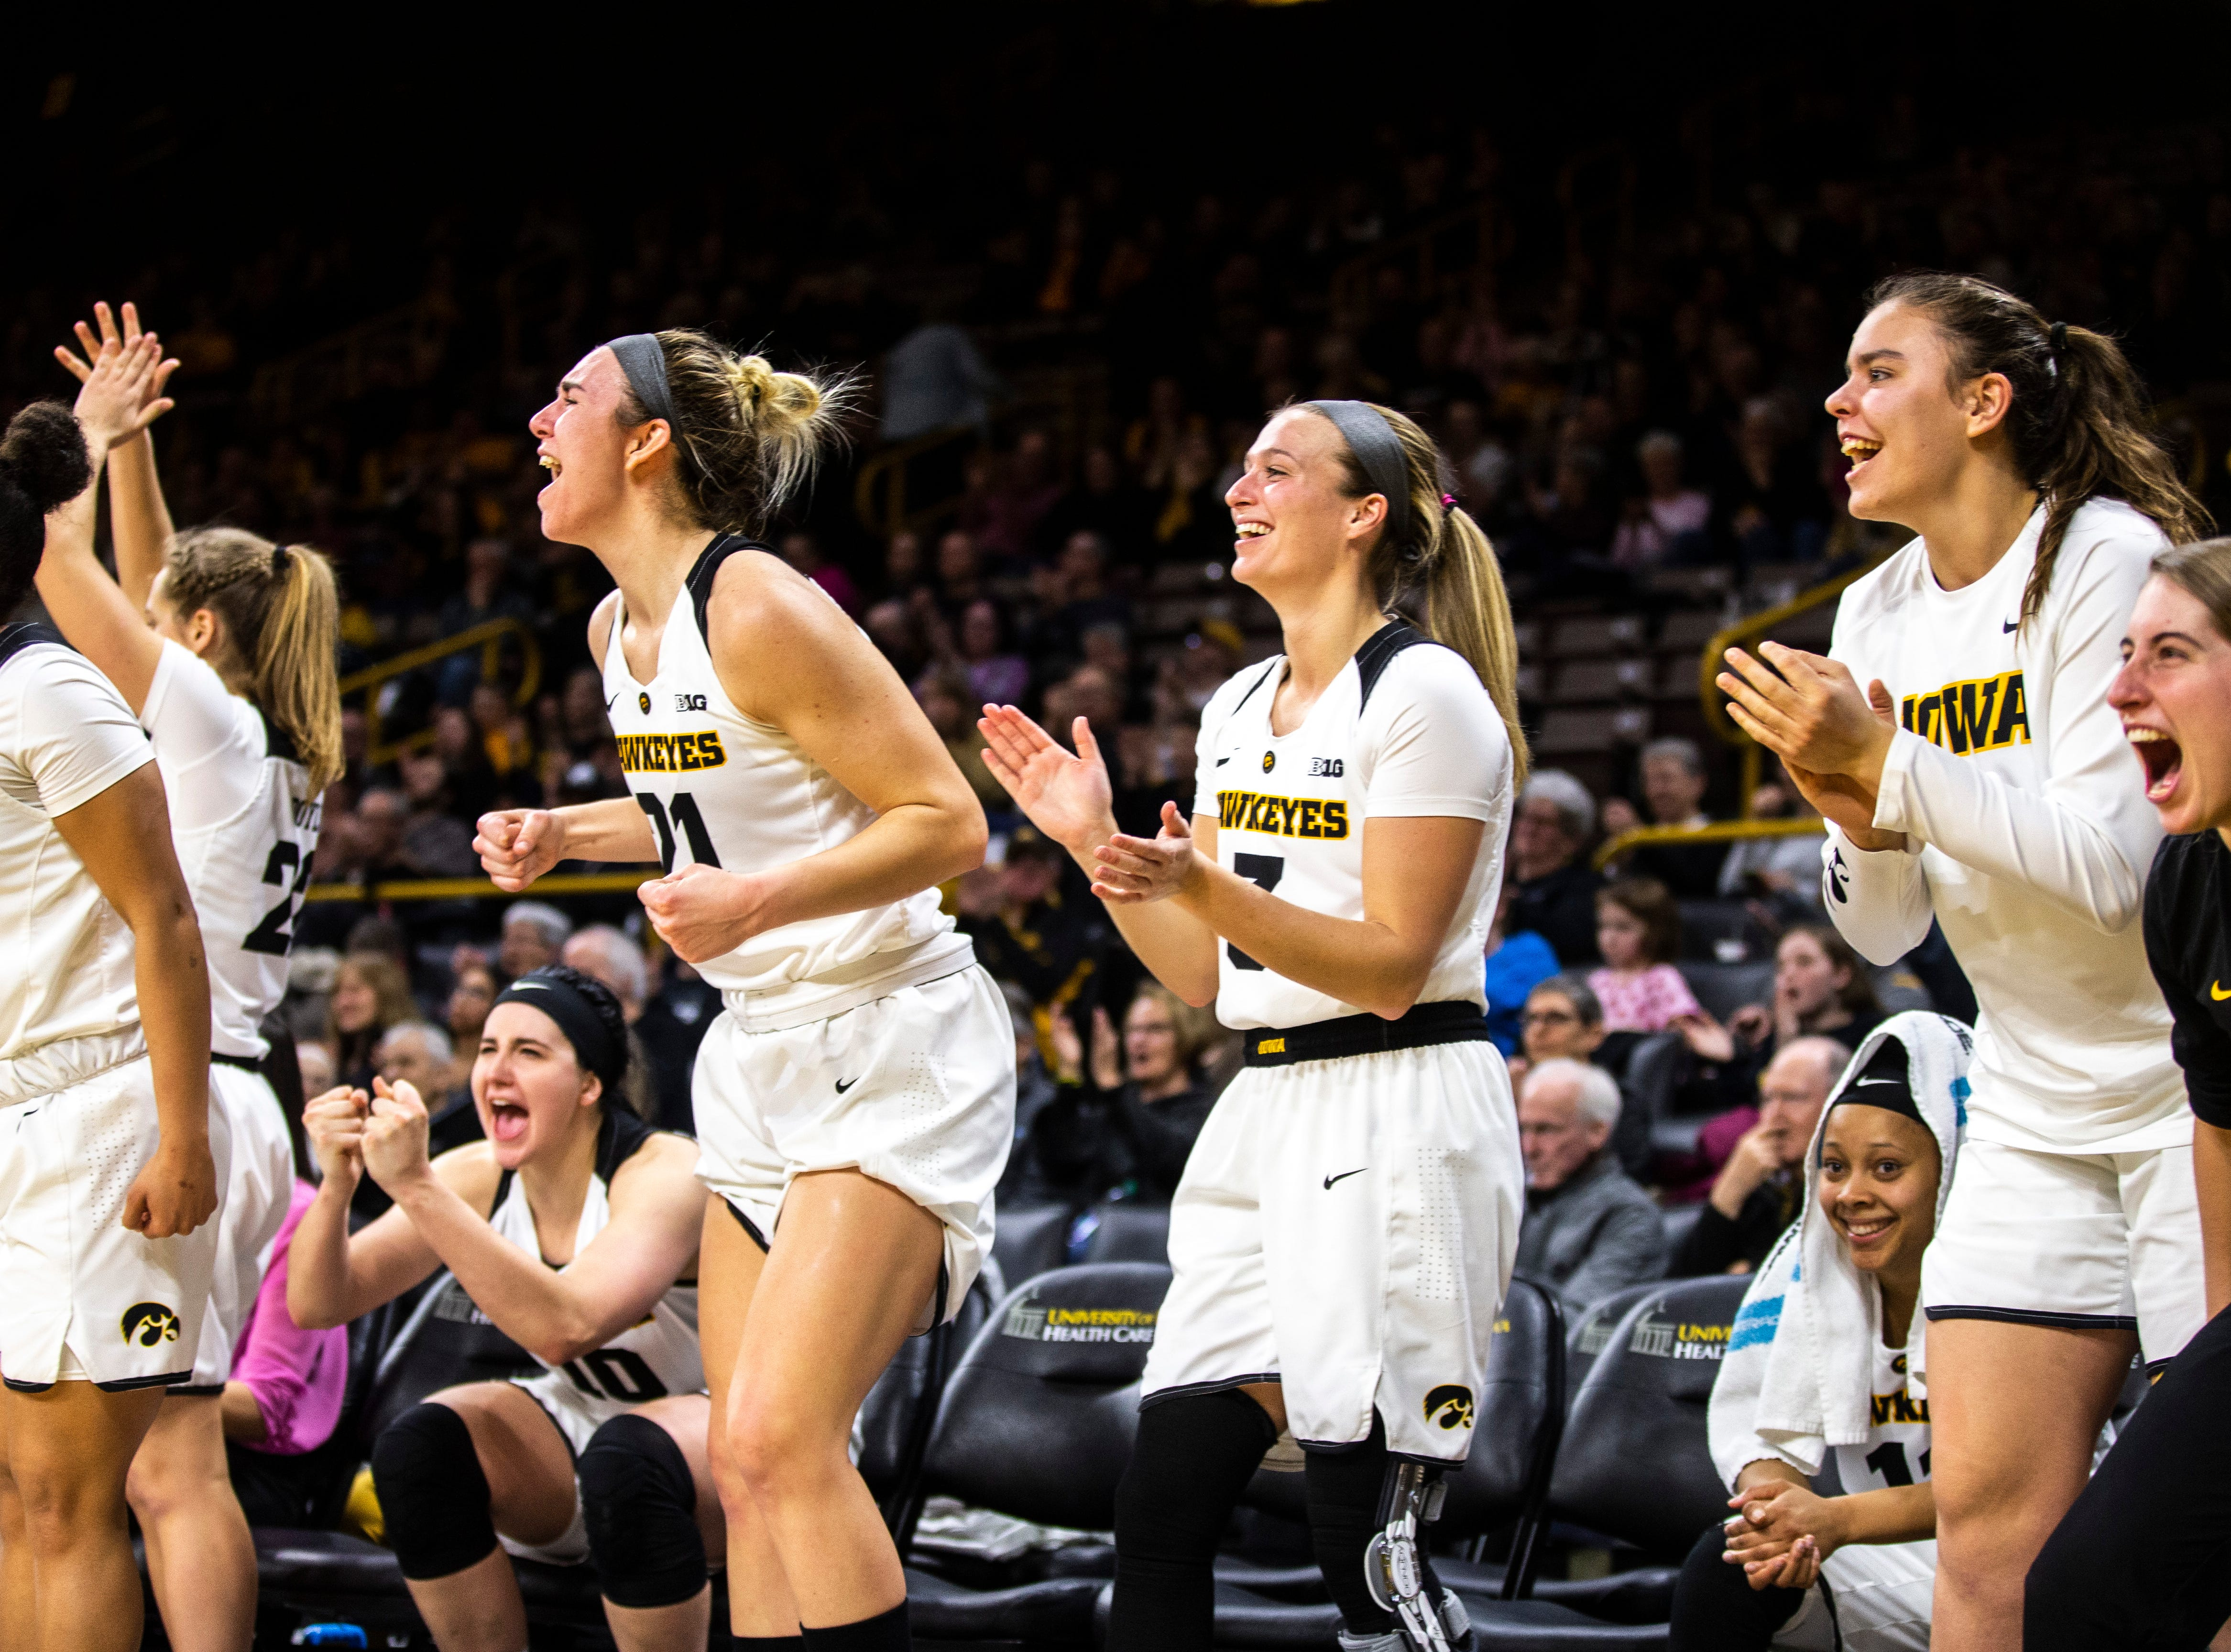 Iowa Hawkeyes bench celebrates during a NCAA Big Ten Conference women's basketball game on Thursday, Feb. 14, 2019 at Carver-Hawkeye Arena in Iowa City, Iowa.